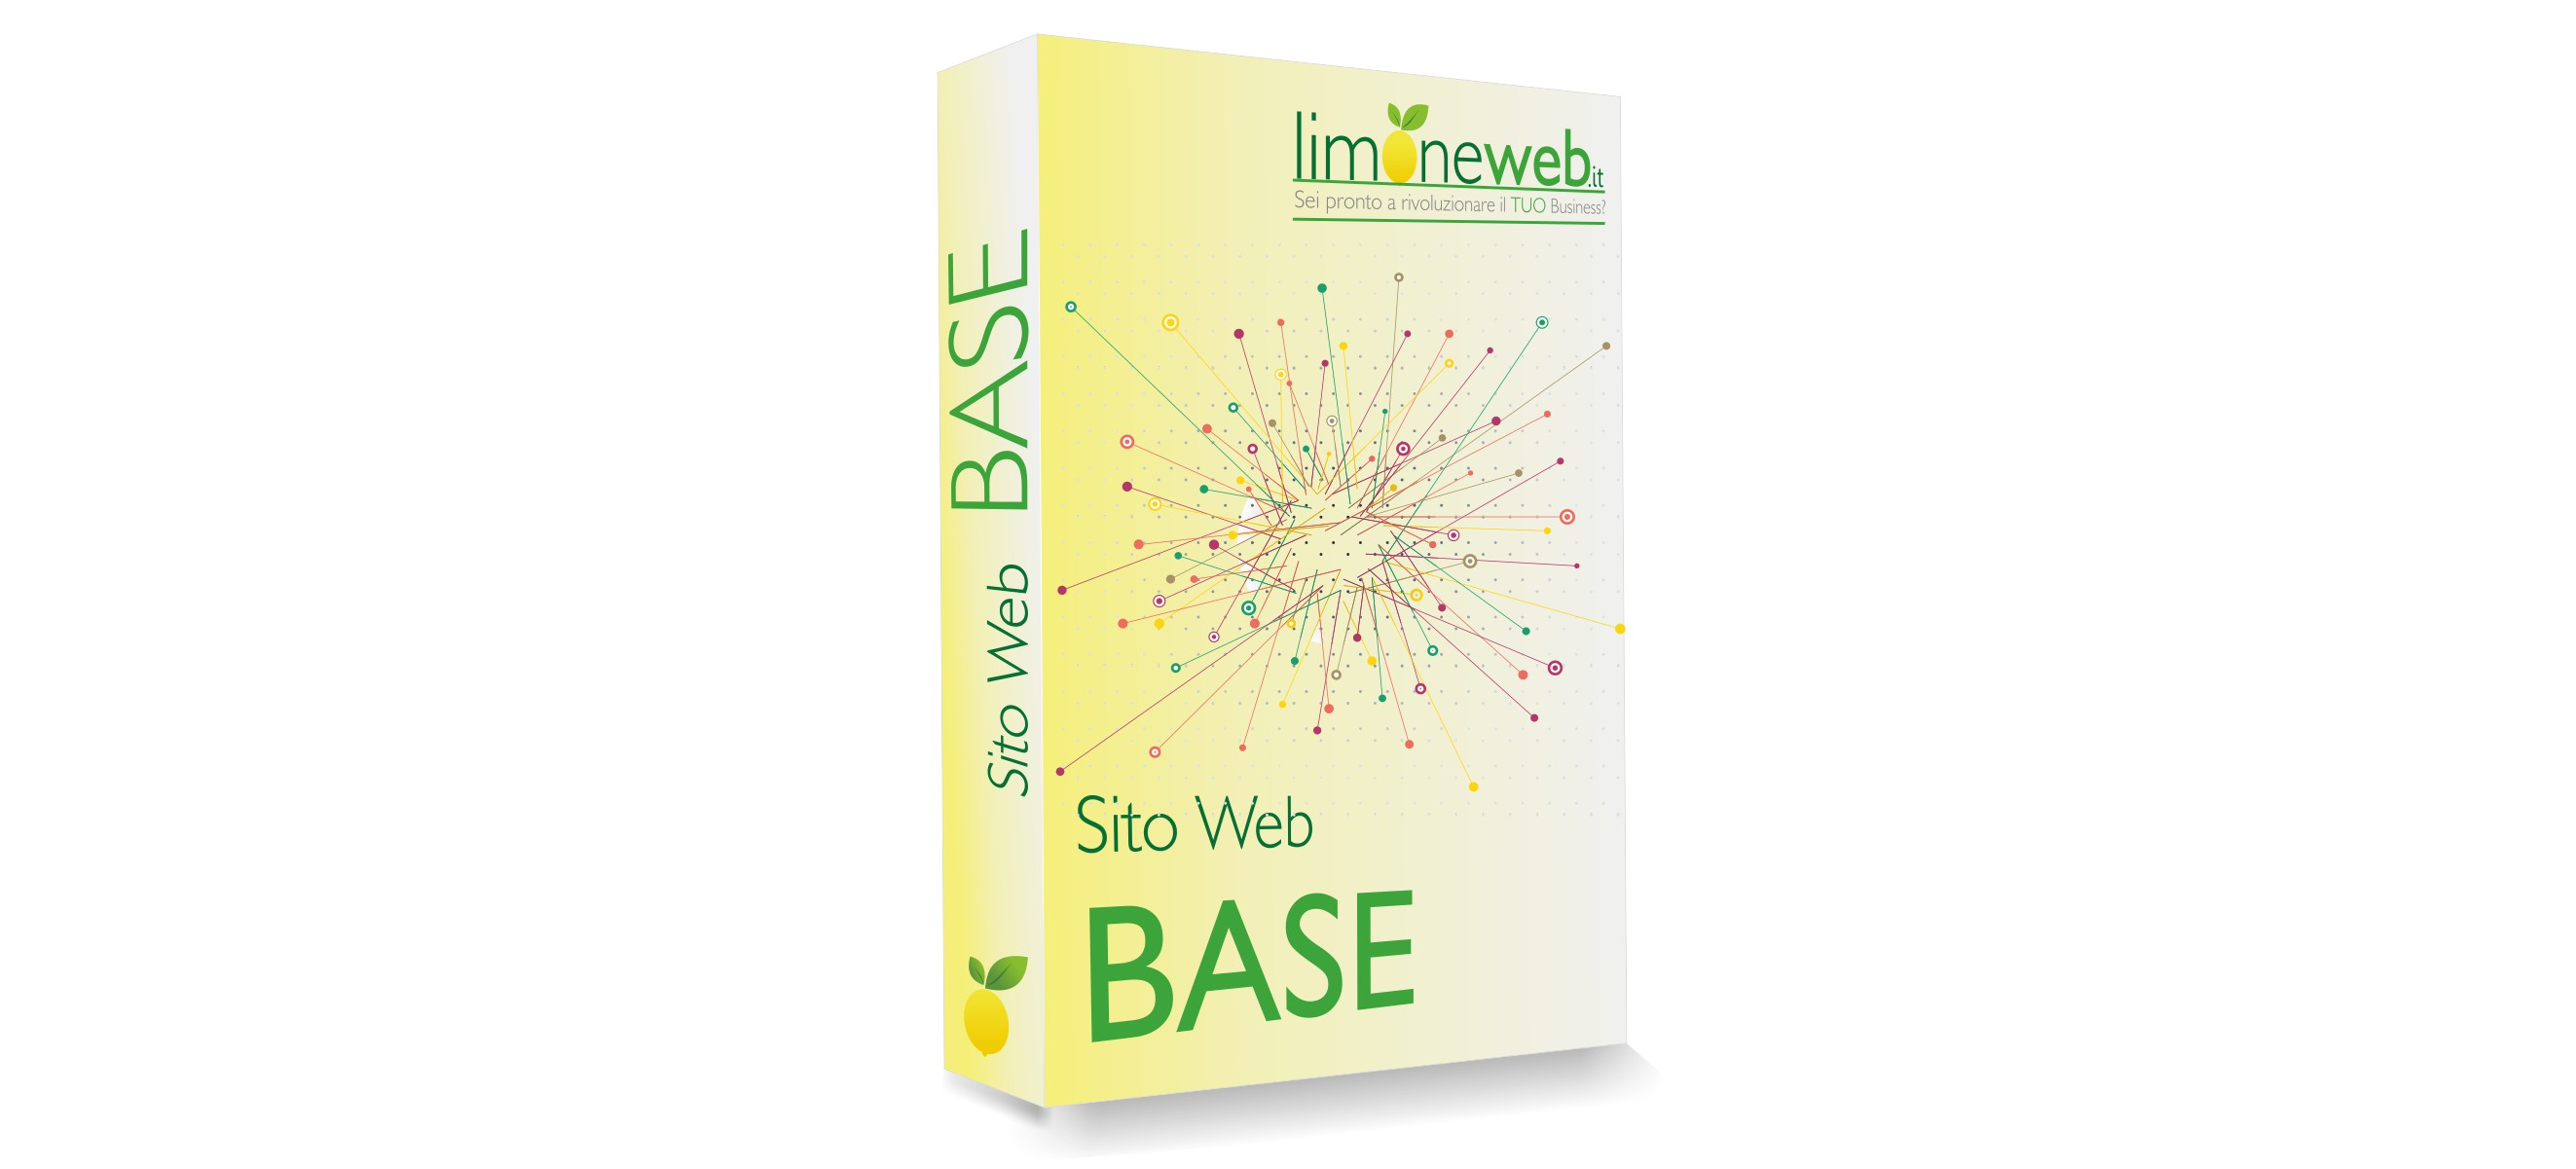 LimoneWeb.it - Sito Web Base